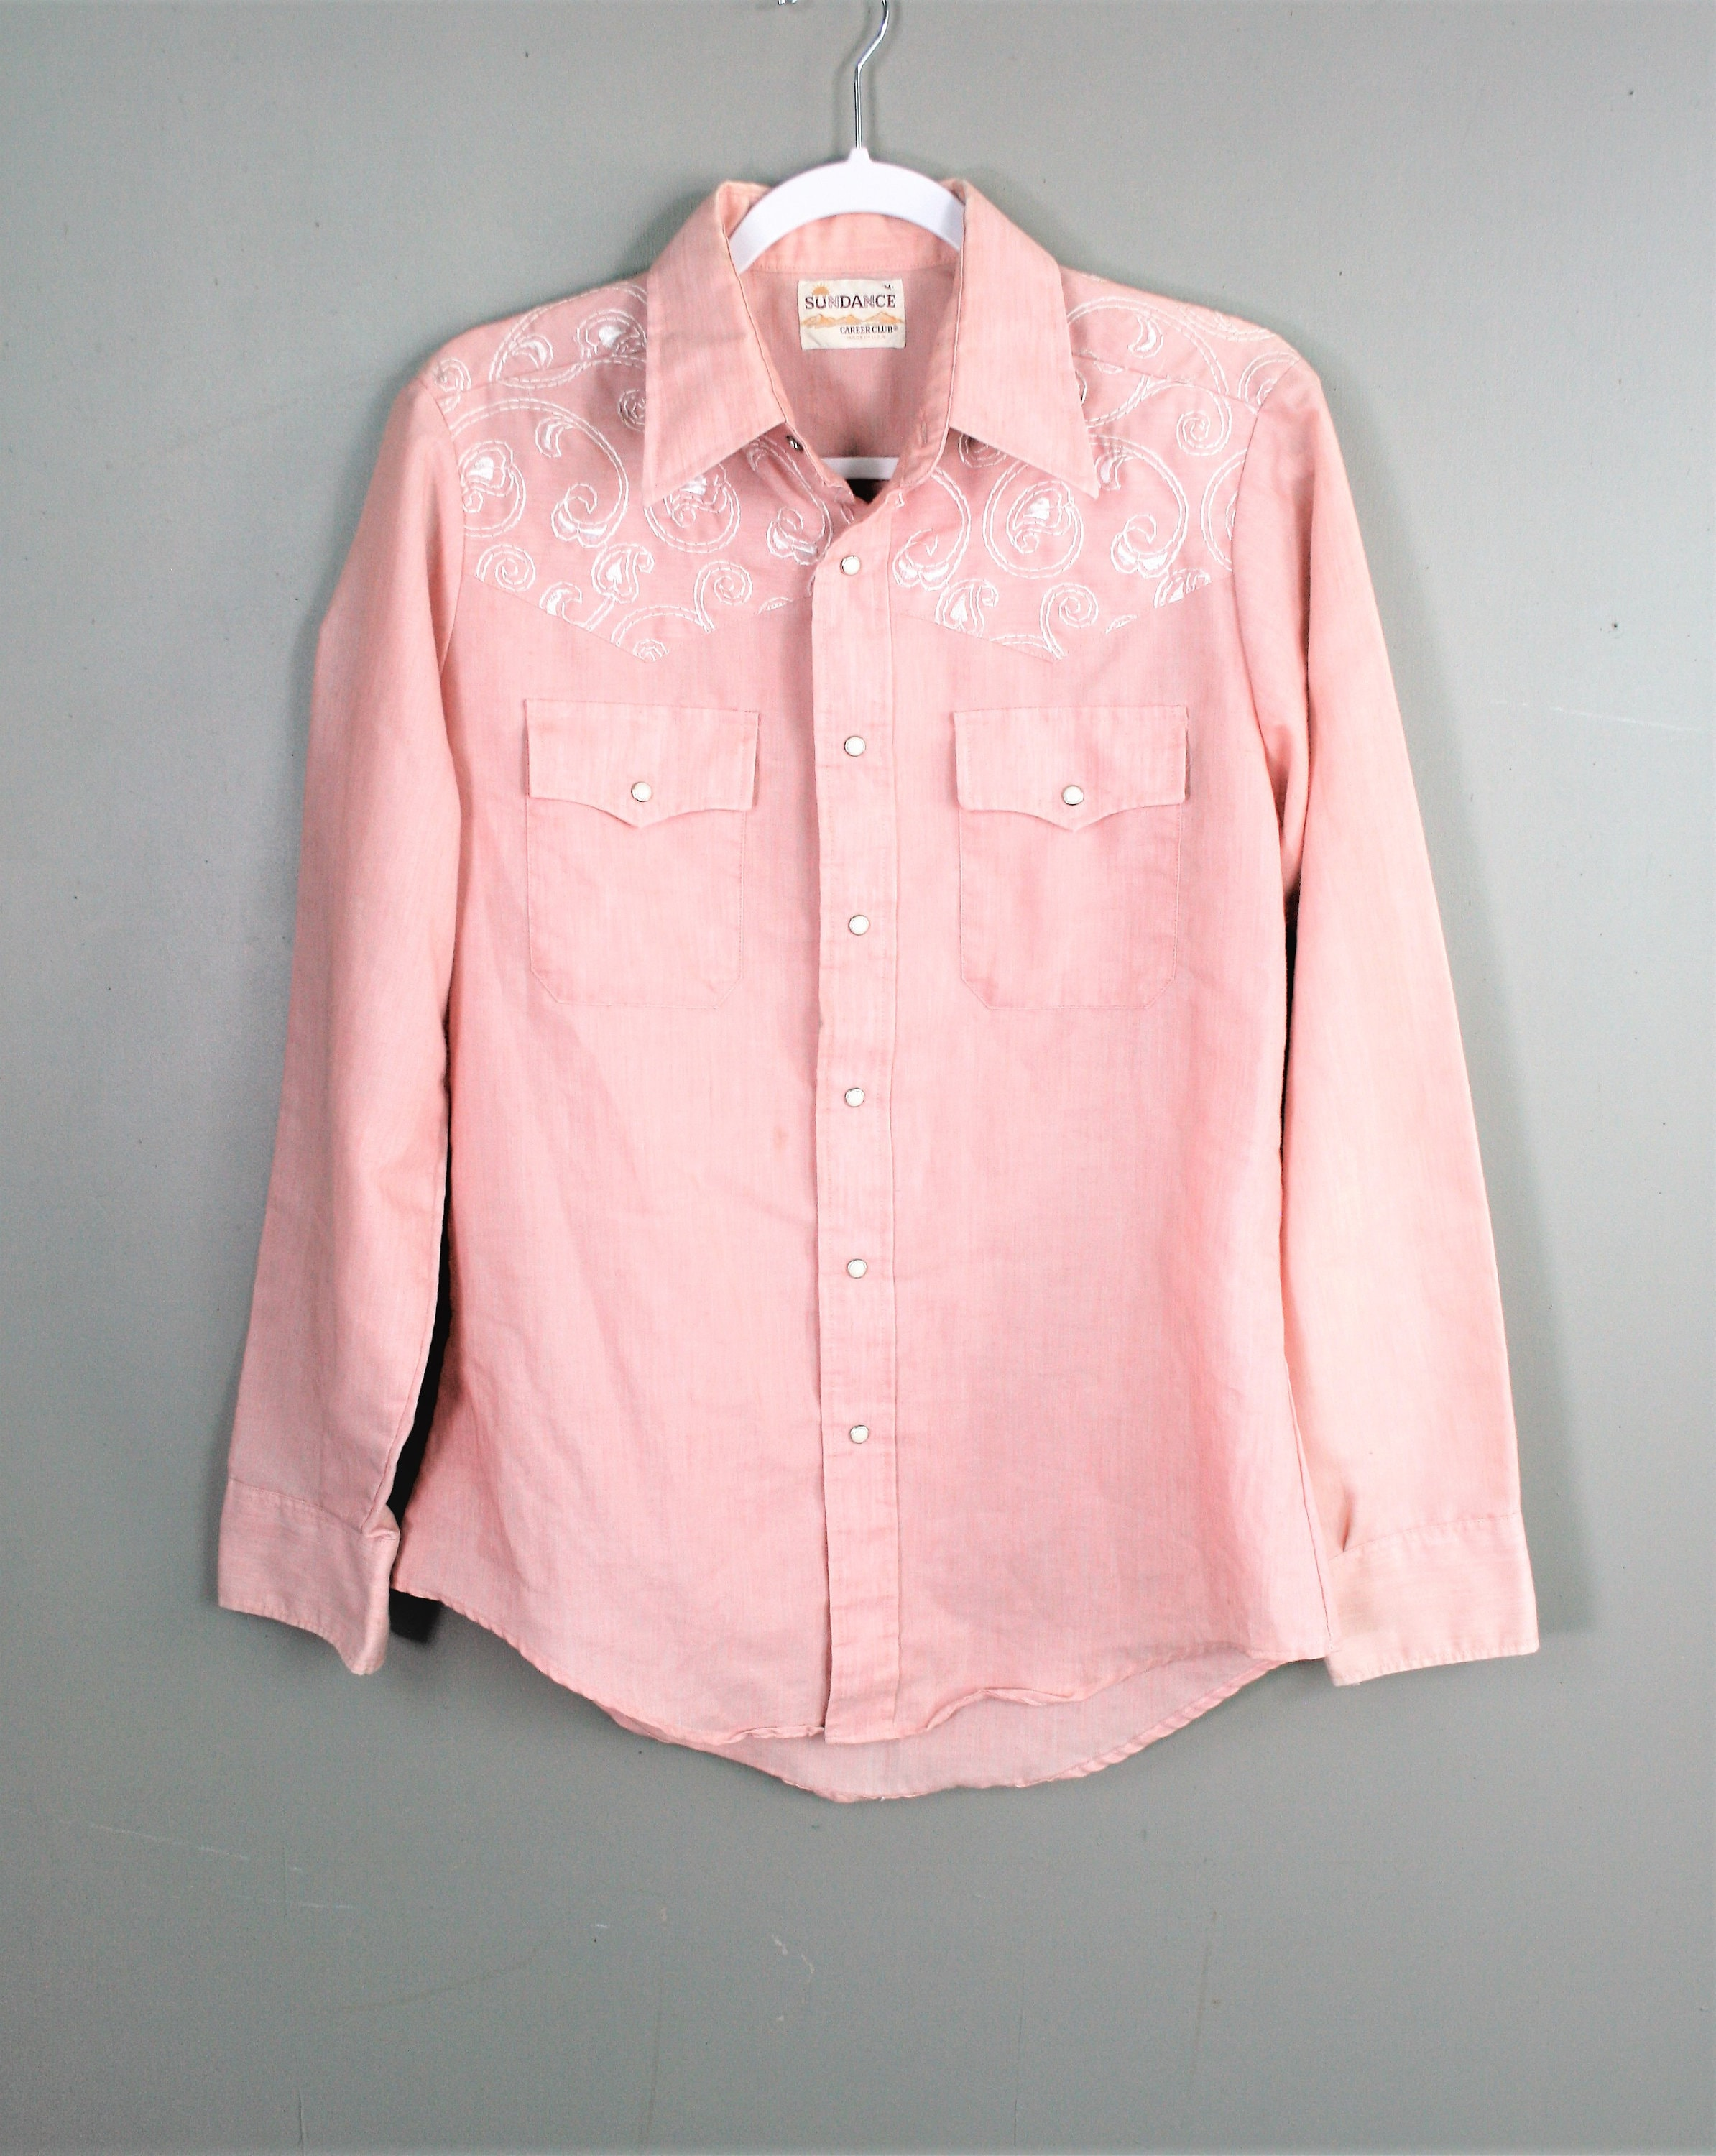 1970s Mens Shirt Styles – Vintage 70s Shirts for Guys 1970S - Pink Chambray Embroidered Yokes Mens Pearl Snap Marked M By Sundance Career Club $0.00 AT vintagedancer.com